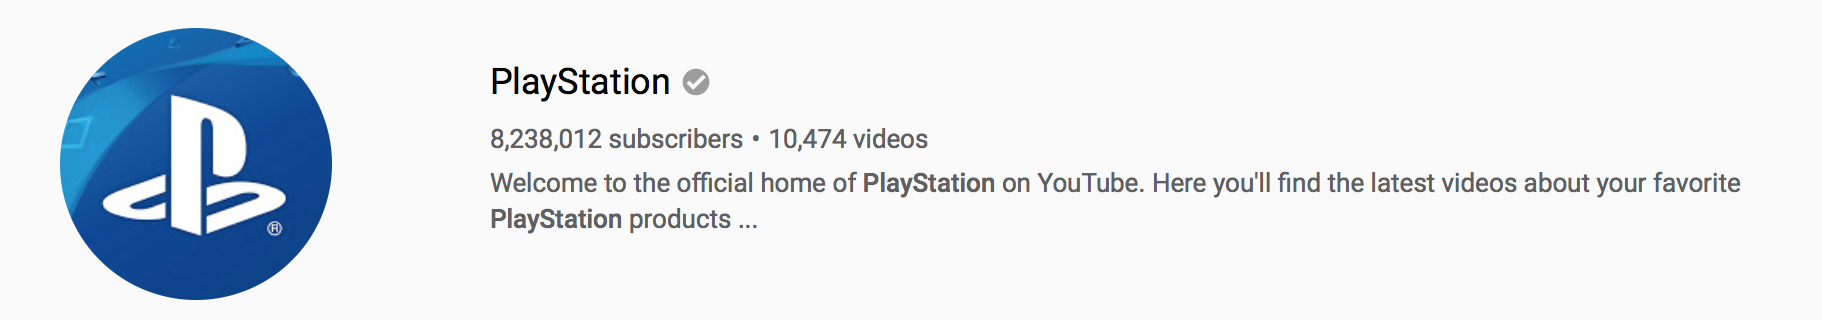 playstation youtube profile photo